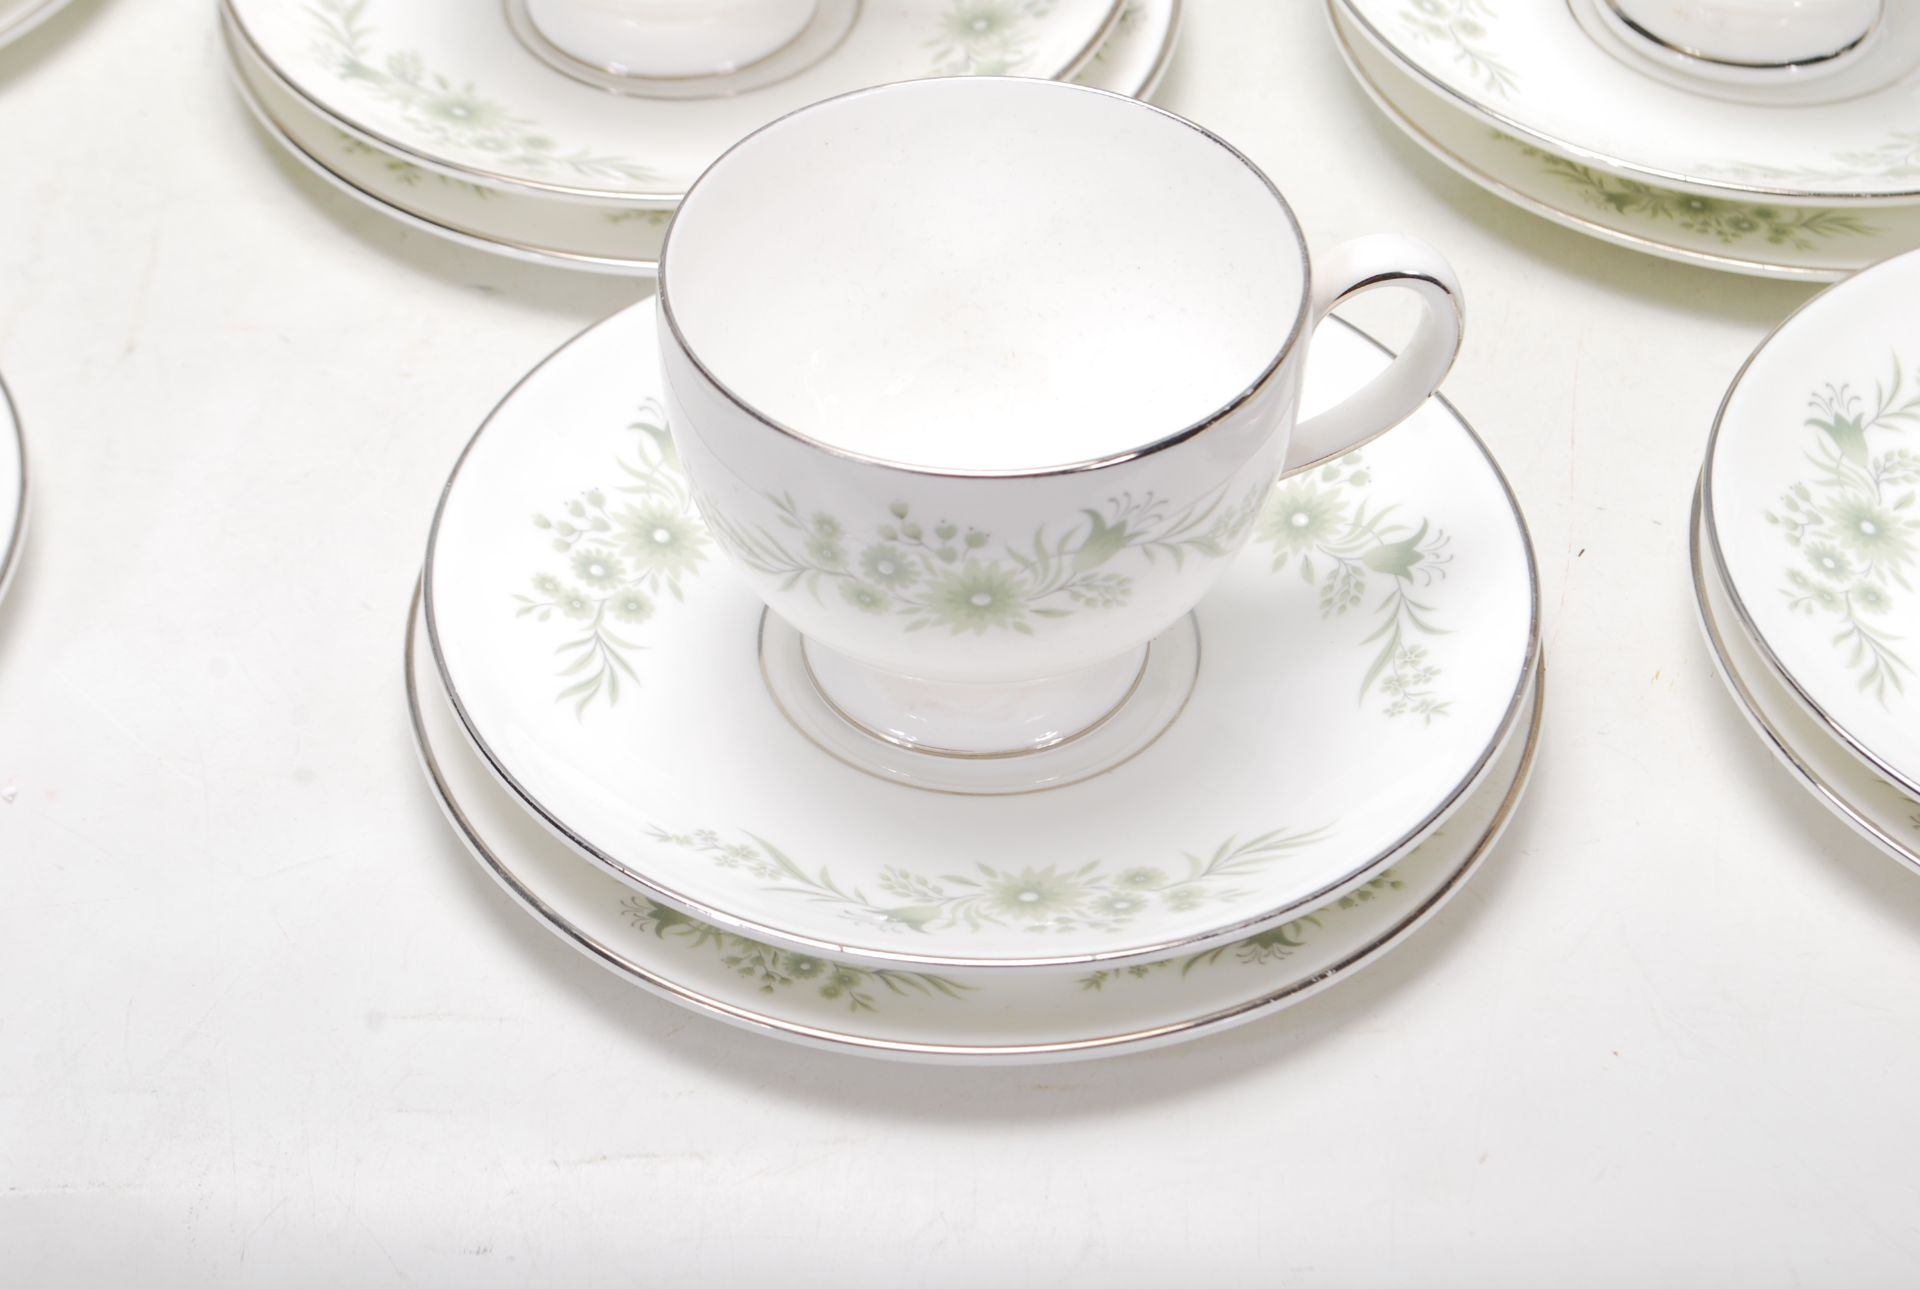 COLLECTION OF LATE 20TH CENTURY WEDGWOOD FINE BONE CHINA - Image 2 of 9